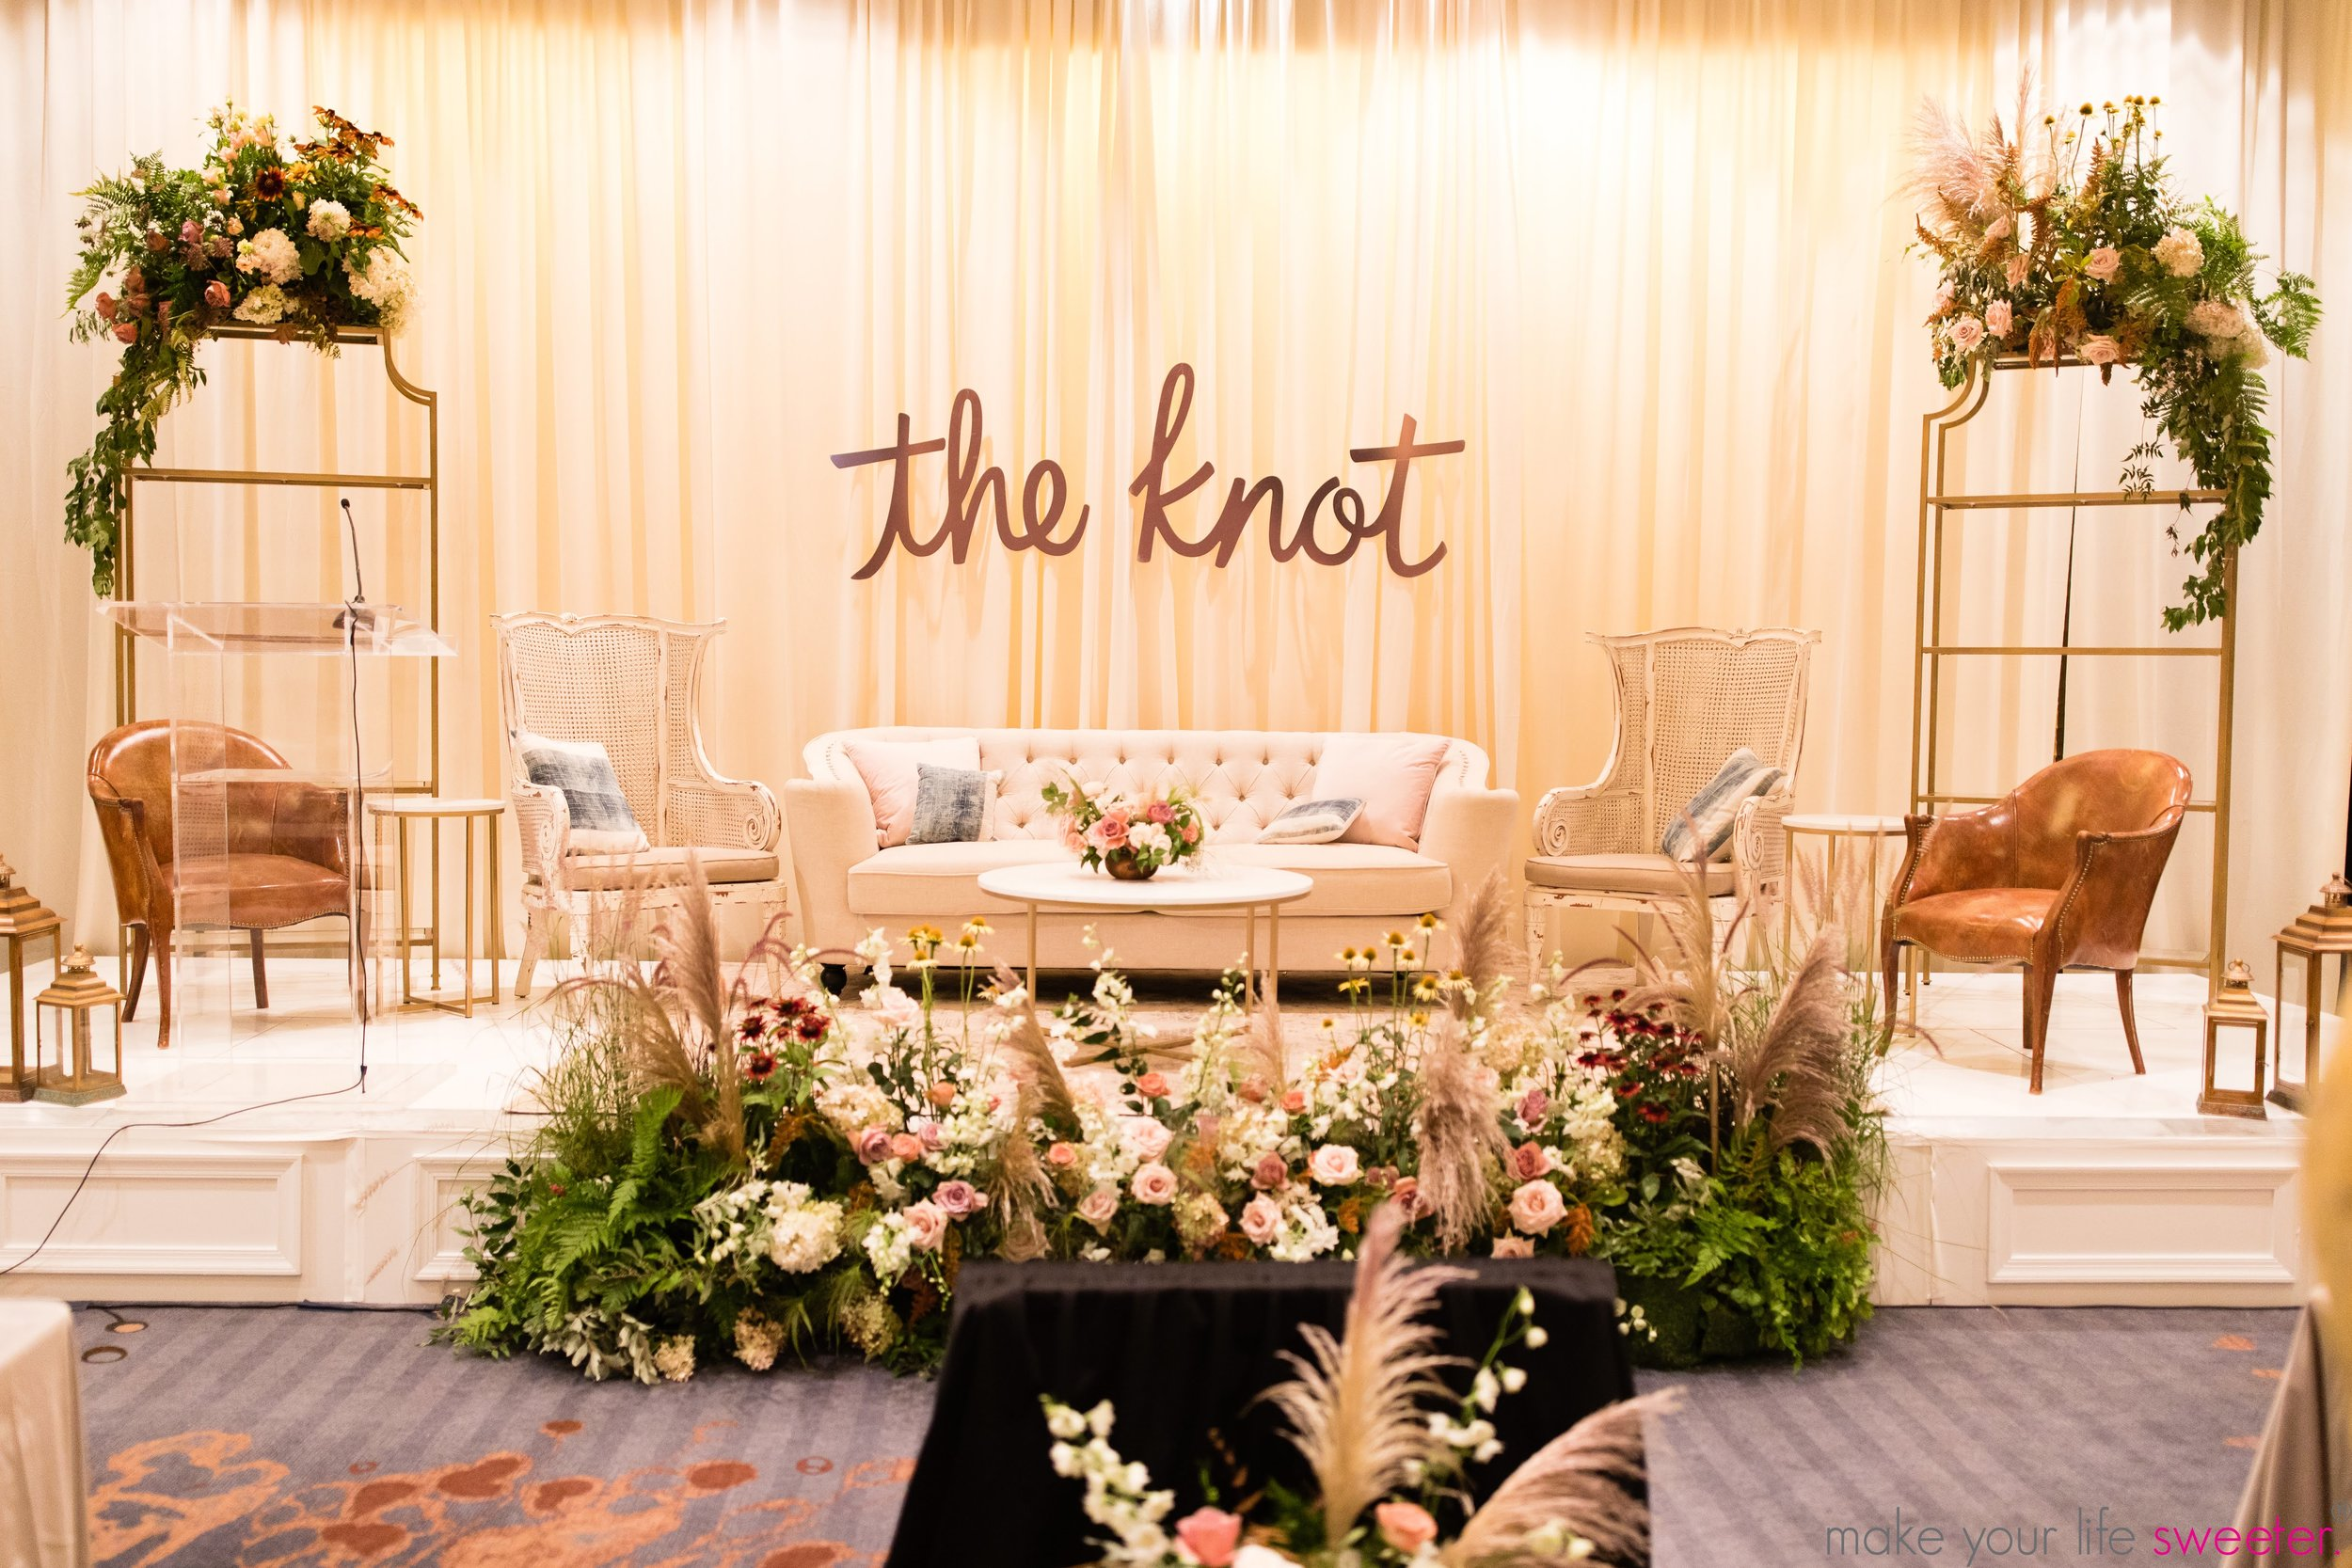 Make Your Life Sweeter Events - The Knot Pro Workshop: Annapolis